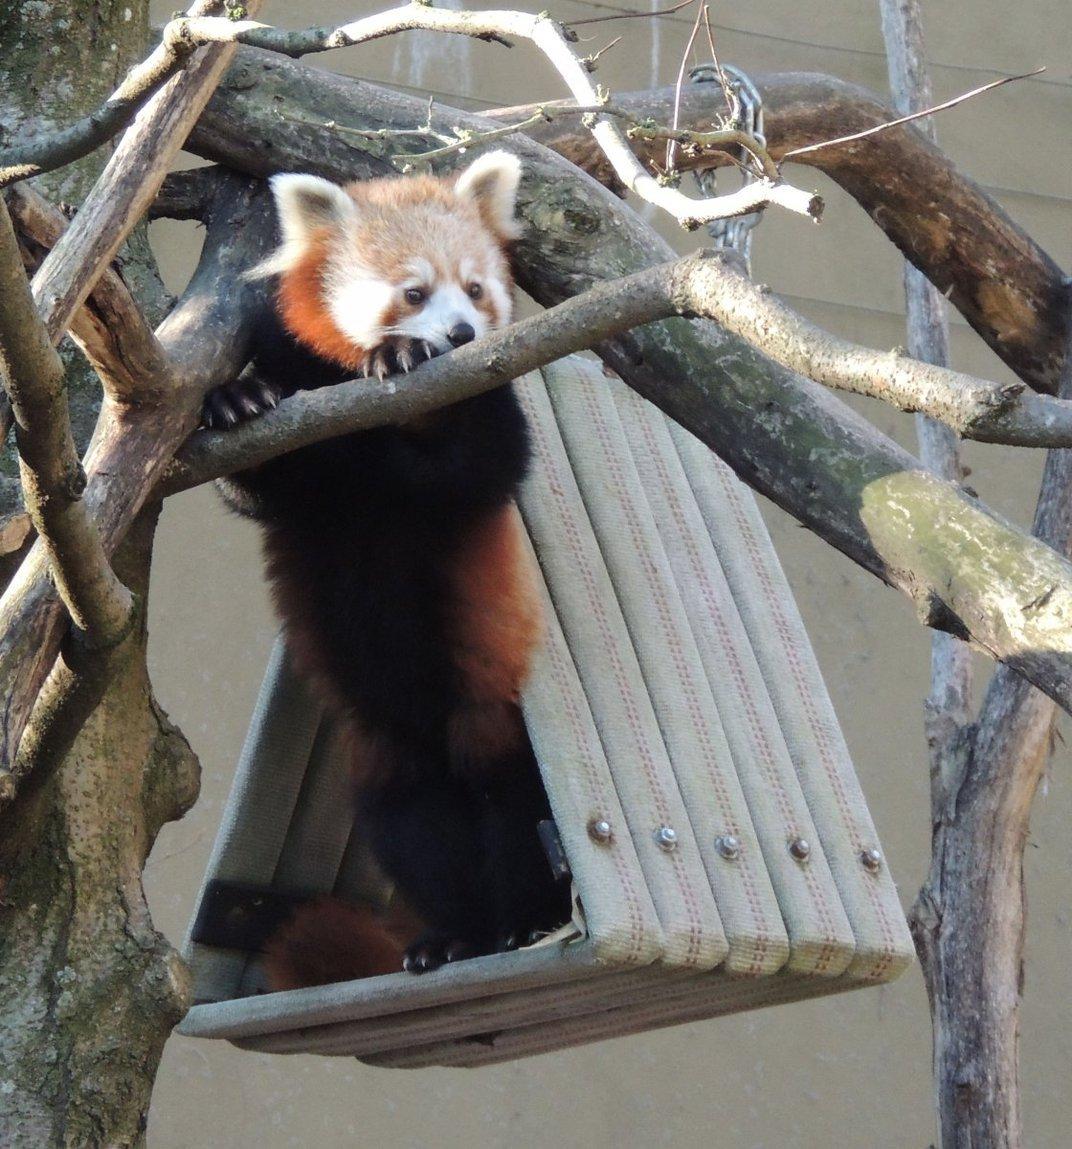 A red panda in a treehouse.